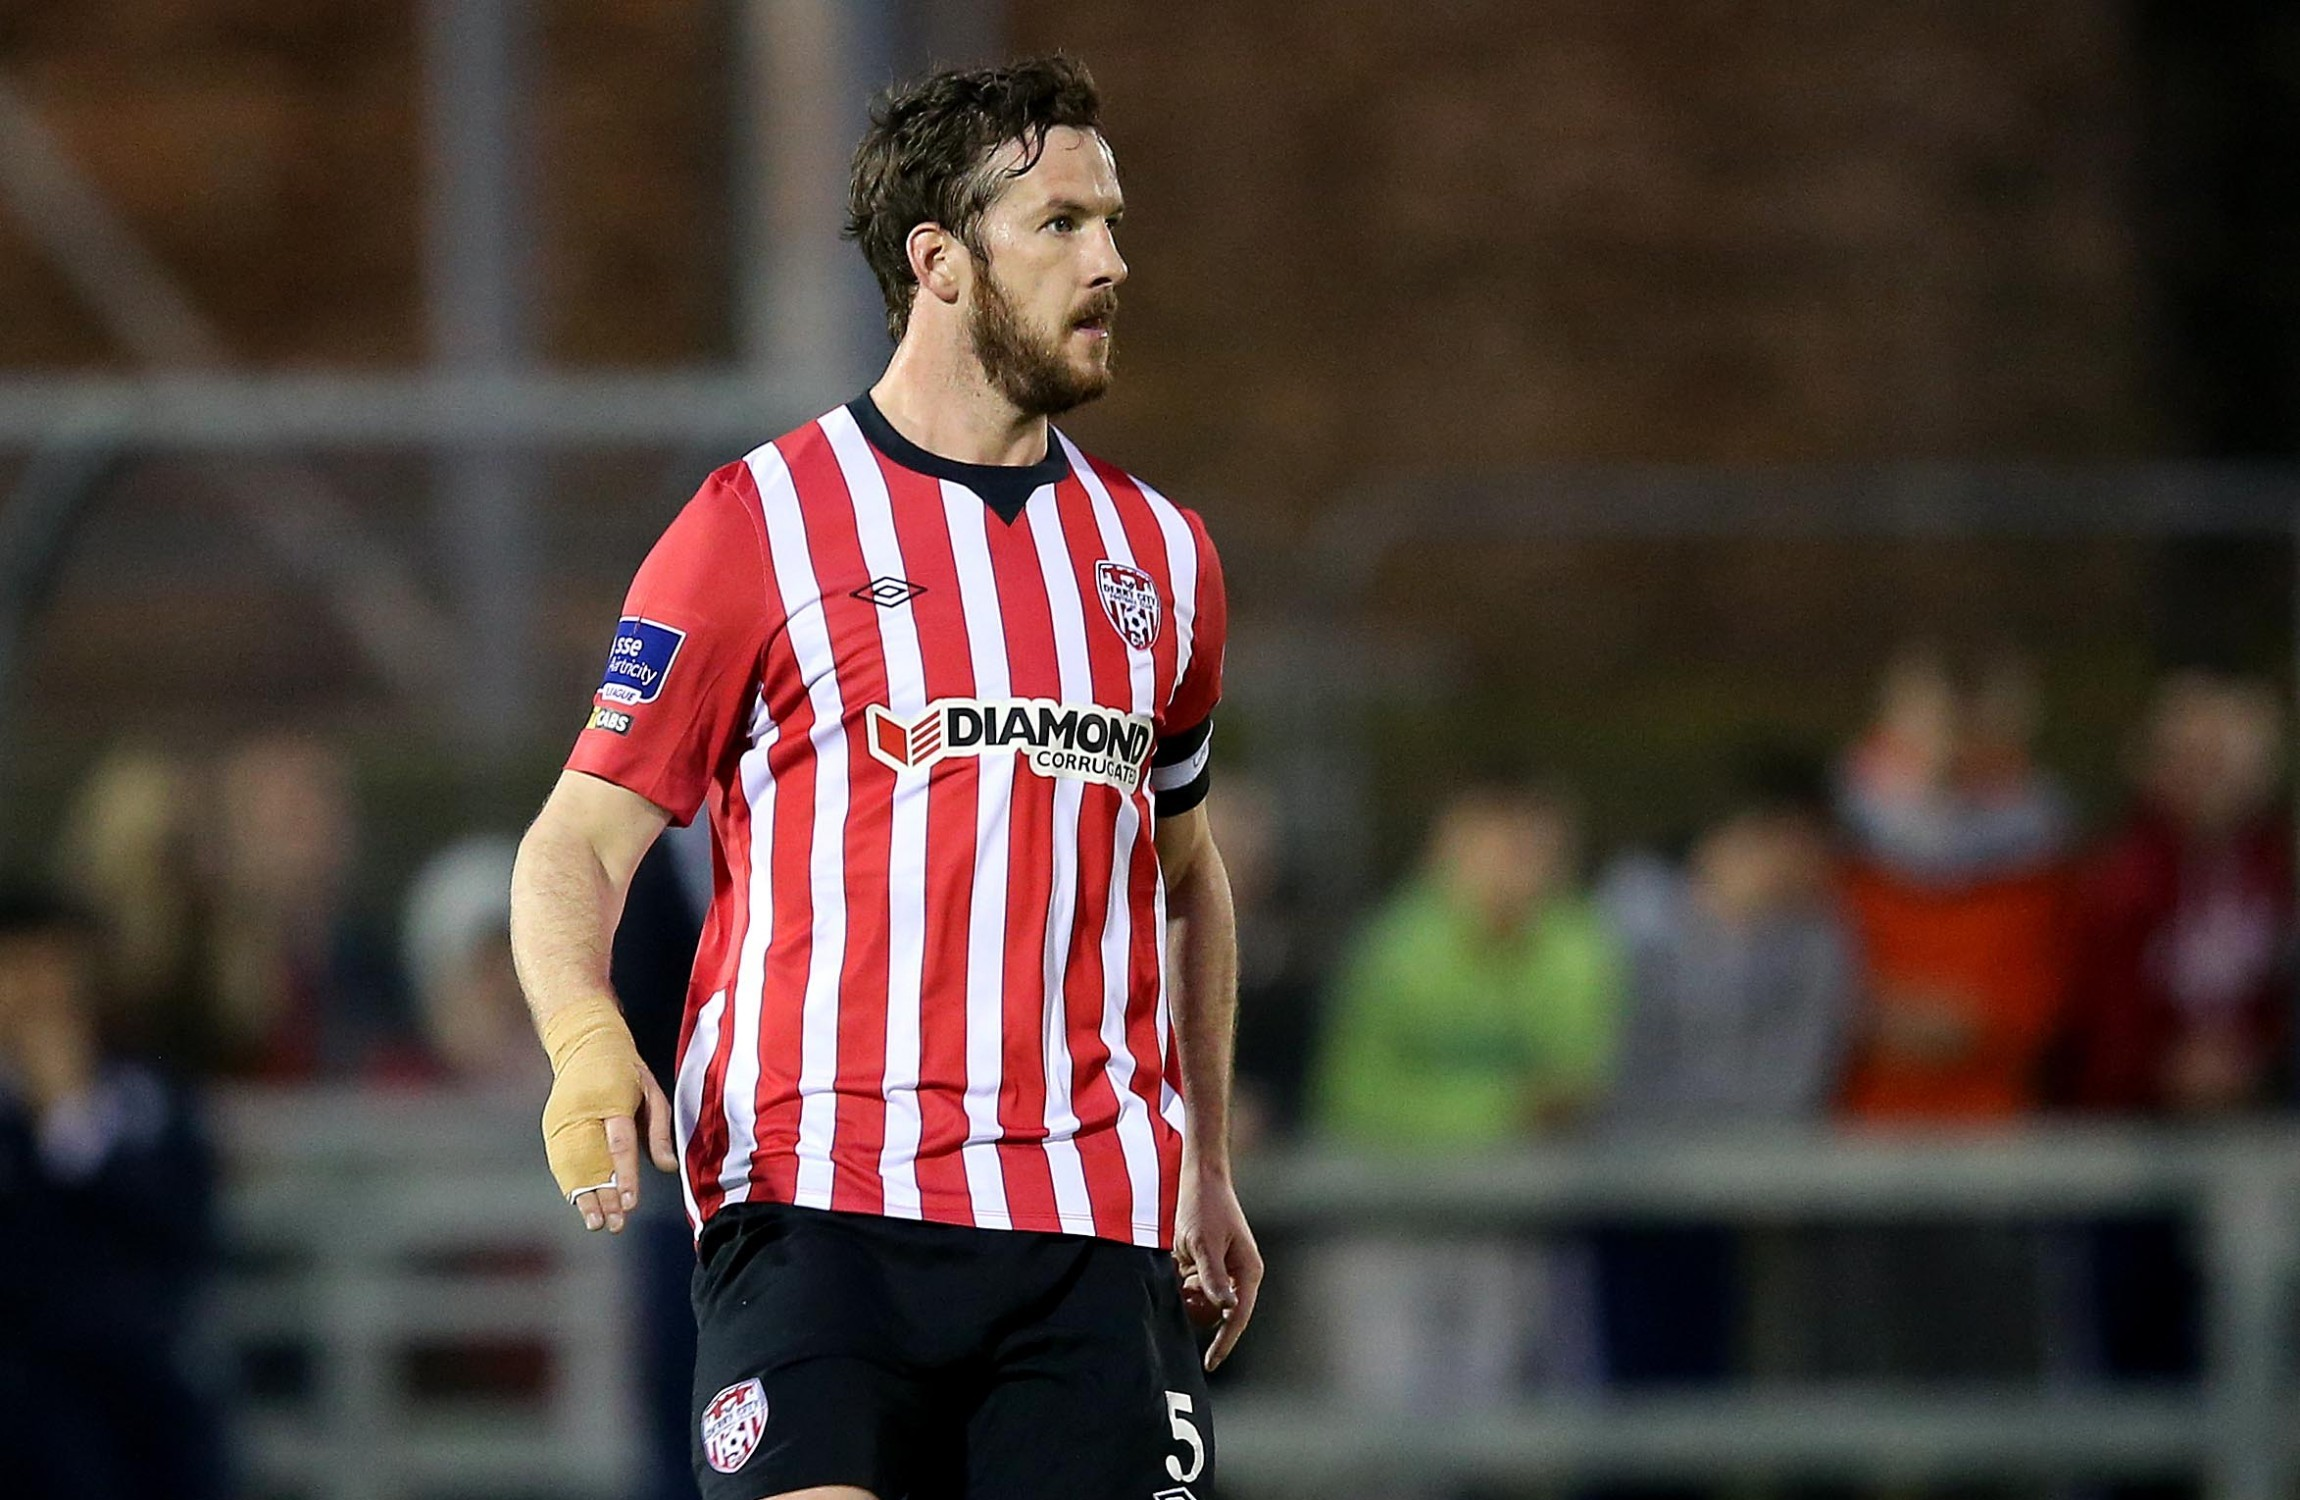 Martin O'Neill pays tribute to Ryan McBride